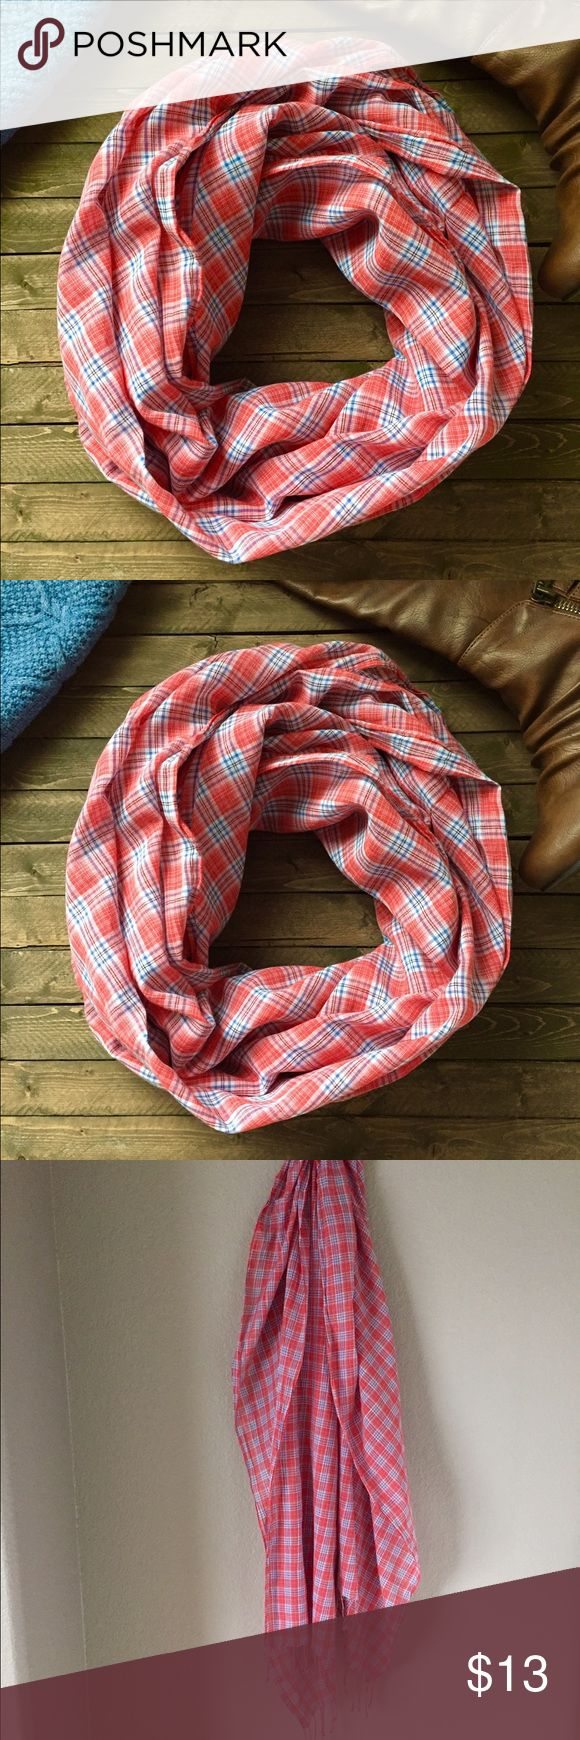 """💕GAP plaid blanket scarf. Printed plaid blanket scarf with fringe hem from GAP. A perfect addition to your wardrobe. Color is red, blue and white and can be worn as a wrap or scarf. Measures 29"""" wide and 81"""" in length. Perfect for layering over your favorite top and jeans. Material is cotton. Home is smoke and pet free. 🌺 GAP Accessories Scarves & Wraps"""